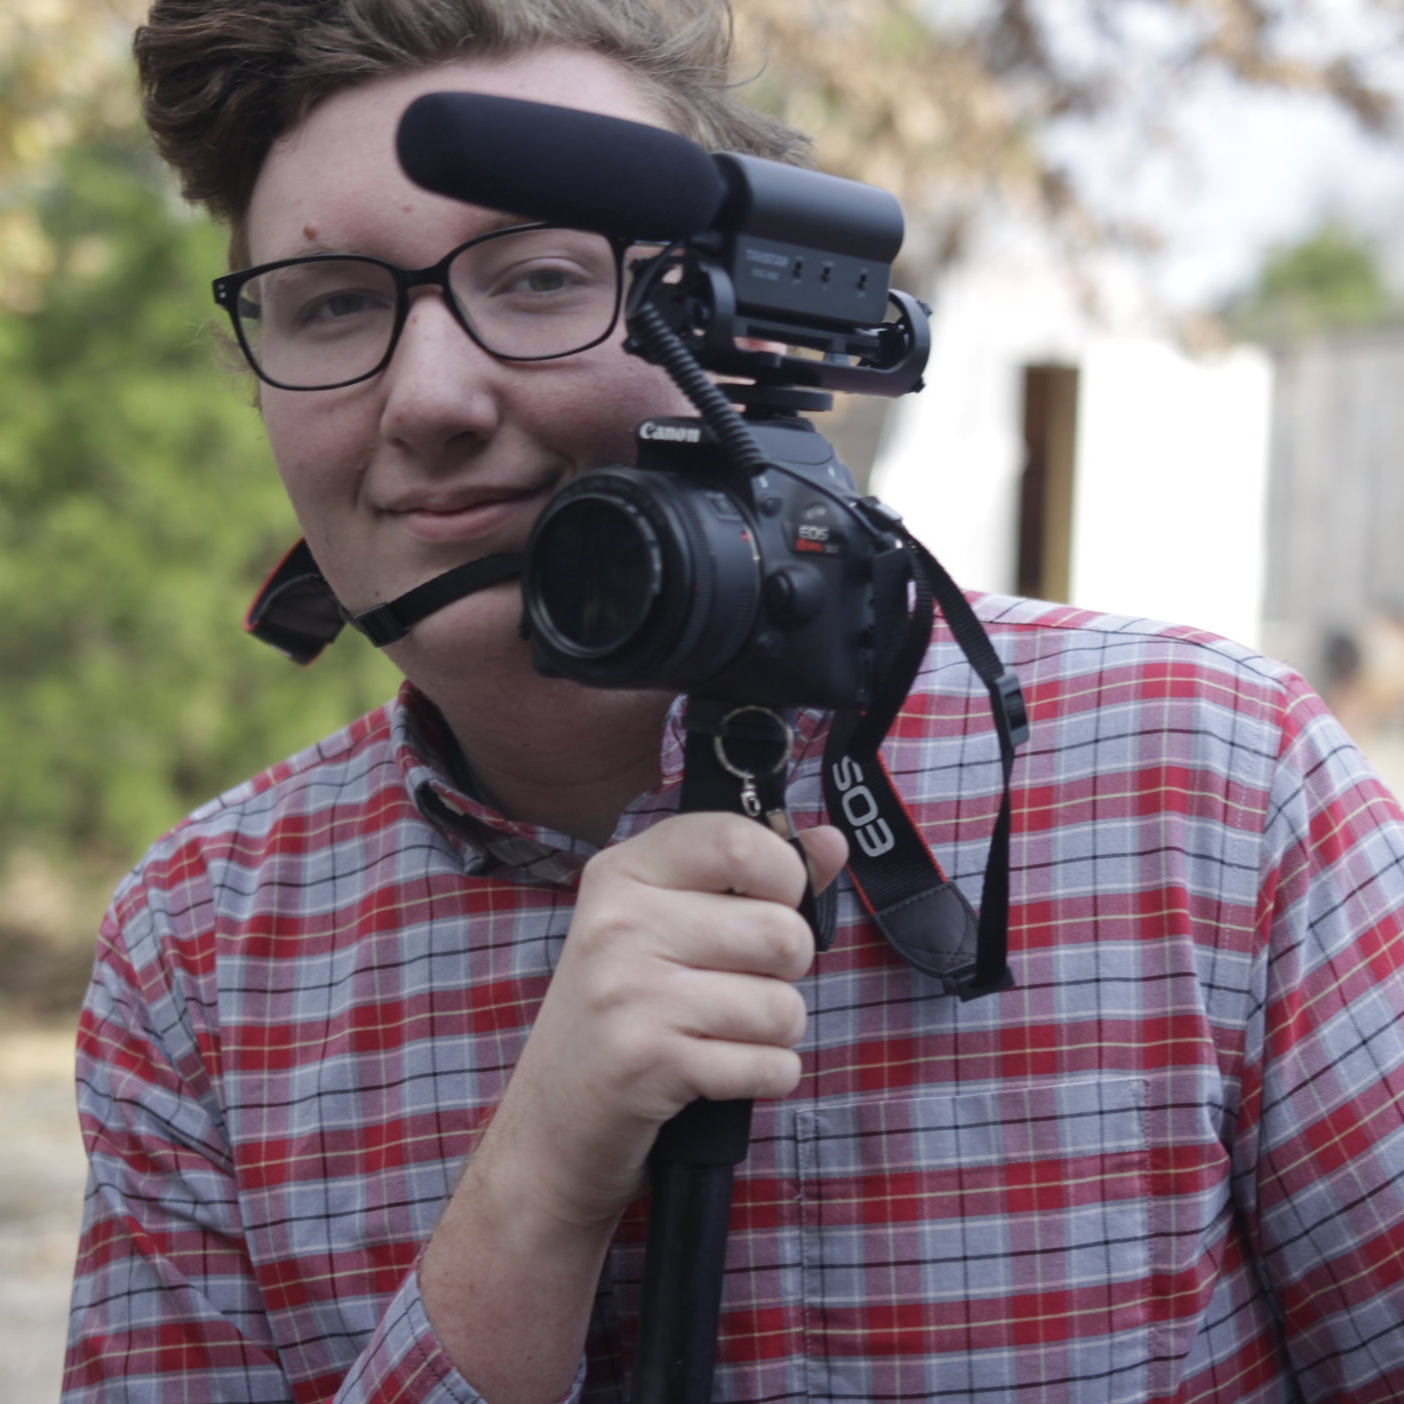 Dylan weatherly - I've been really into video for a long time, I started doing wedding videos back in 2015 and have since started doing music videos with local artists and interviews with local leadership.